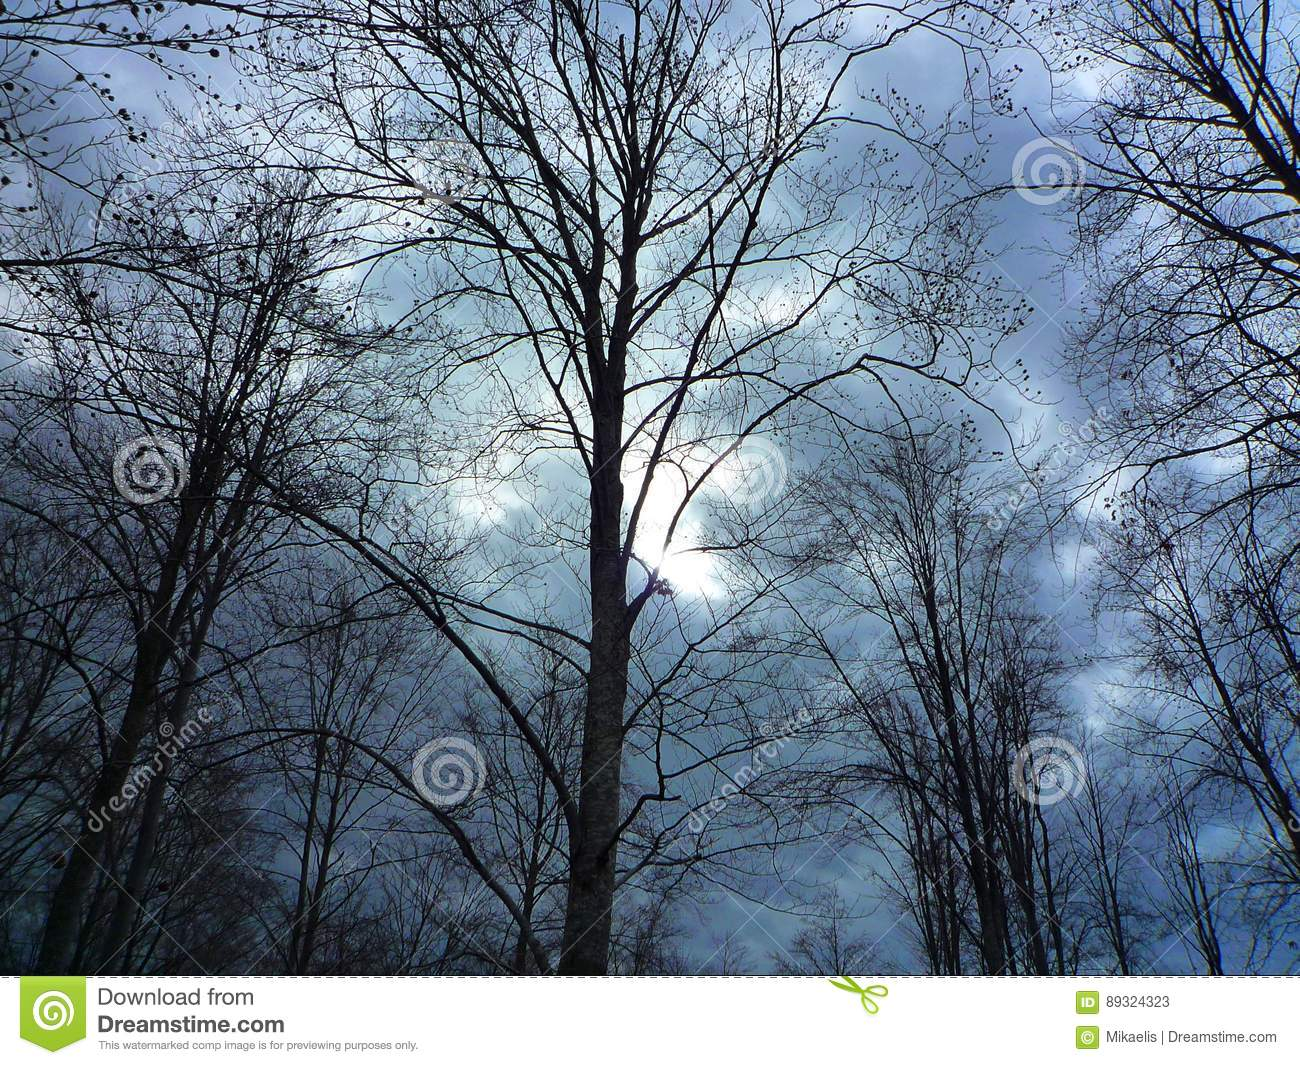 Forest detail with leafless trees in spring on a cloudy evening at sunset